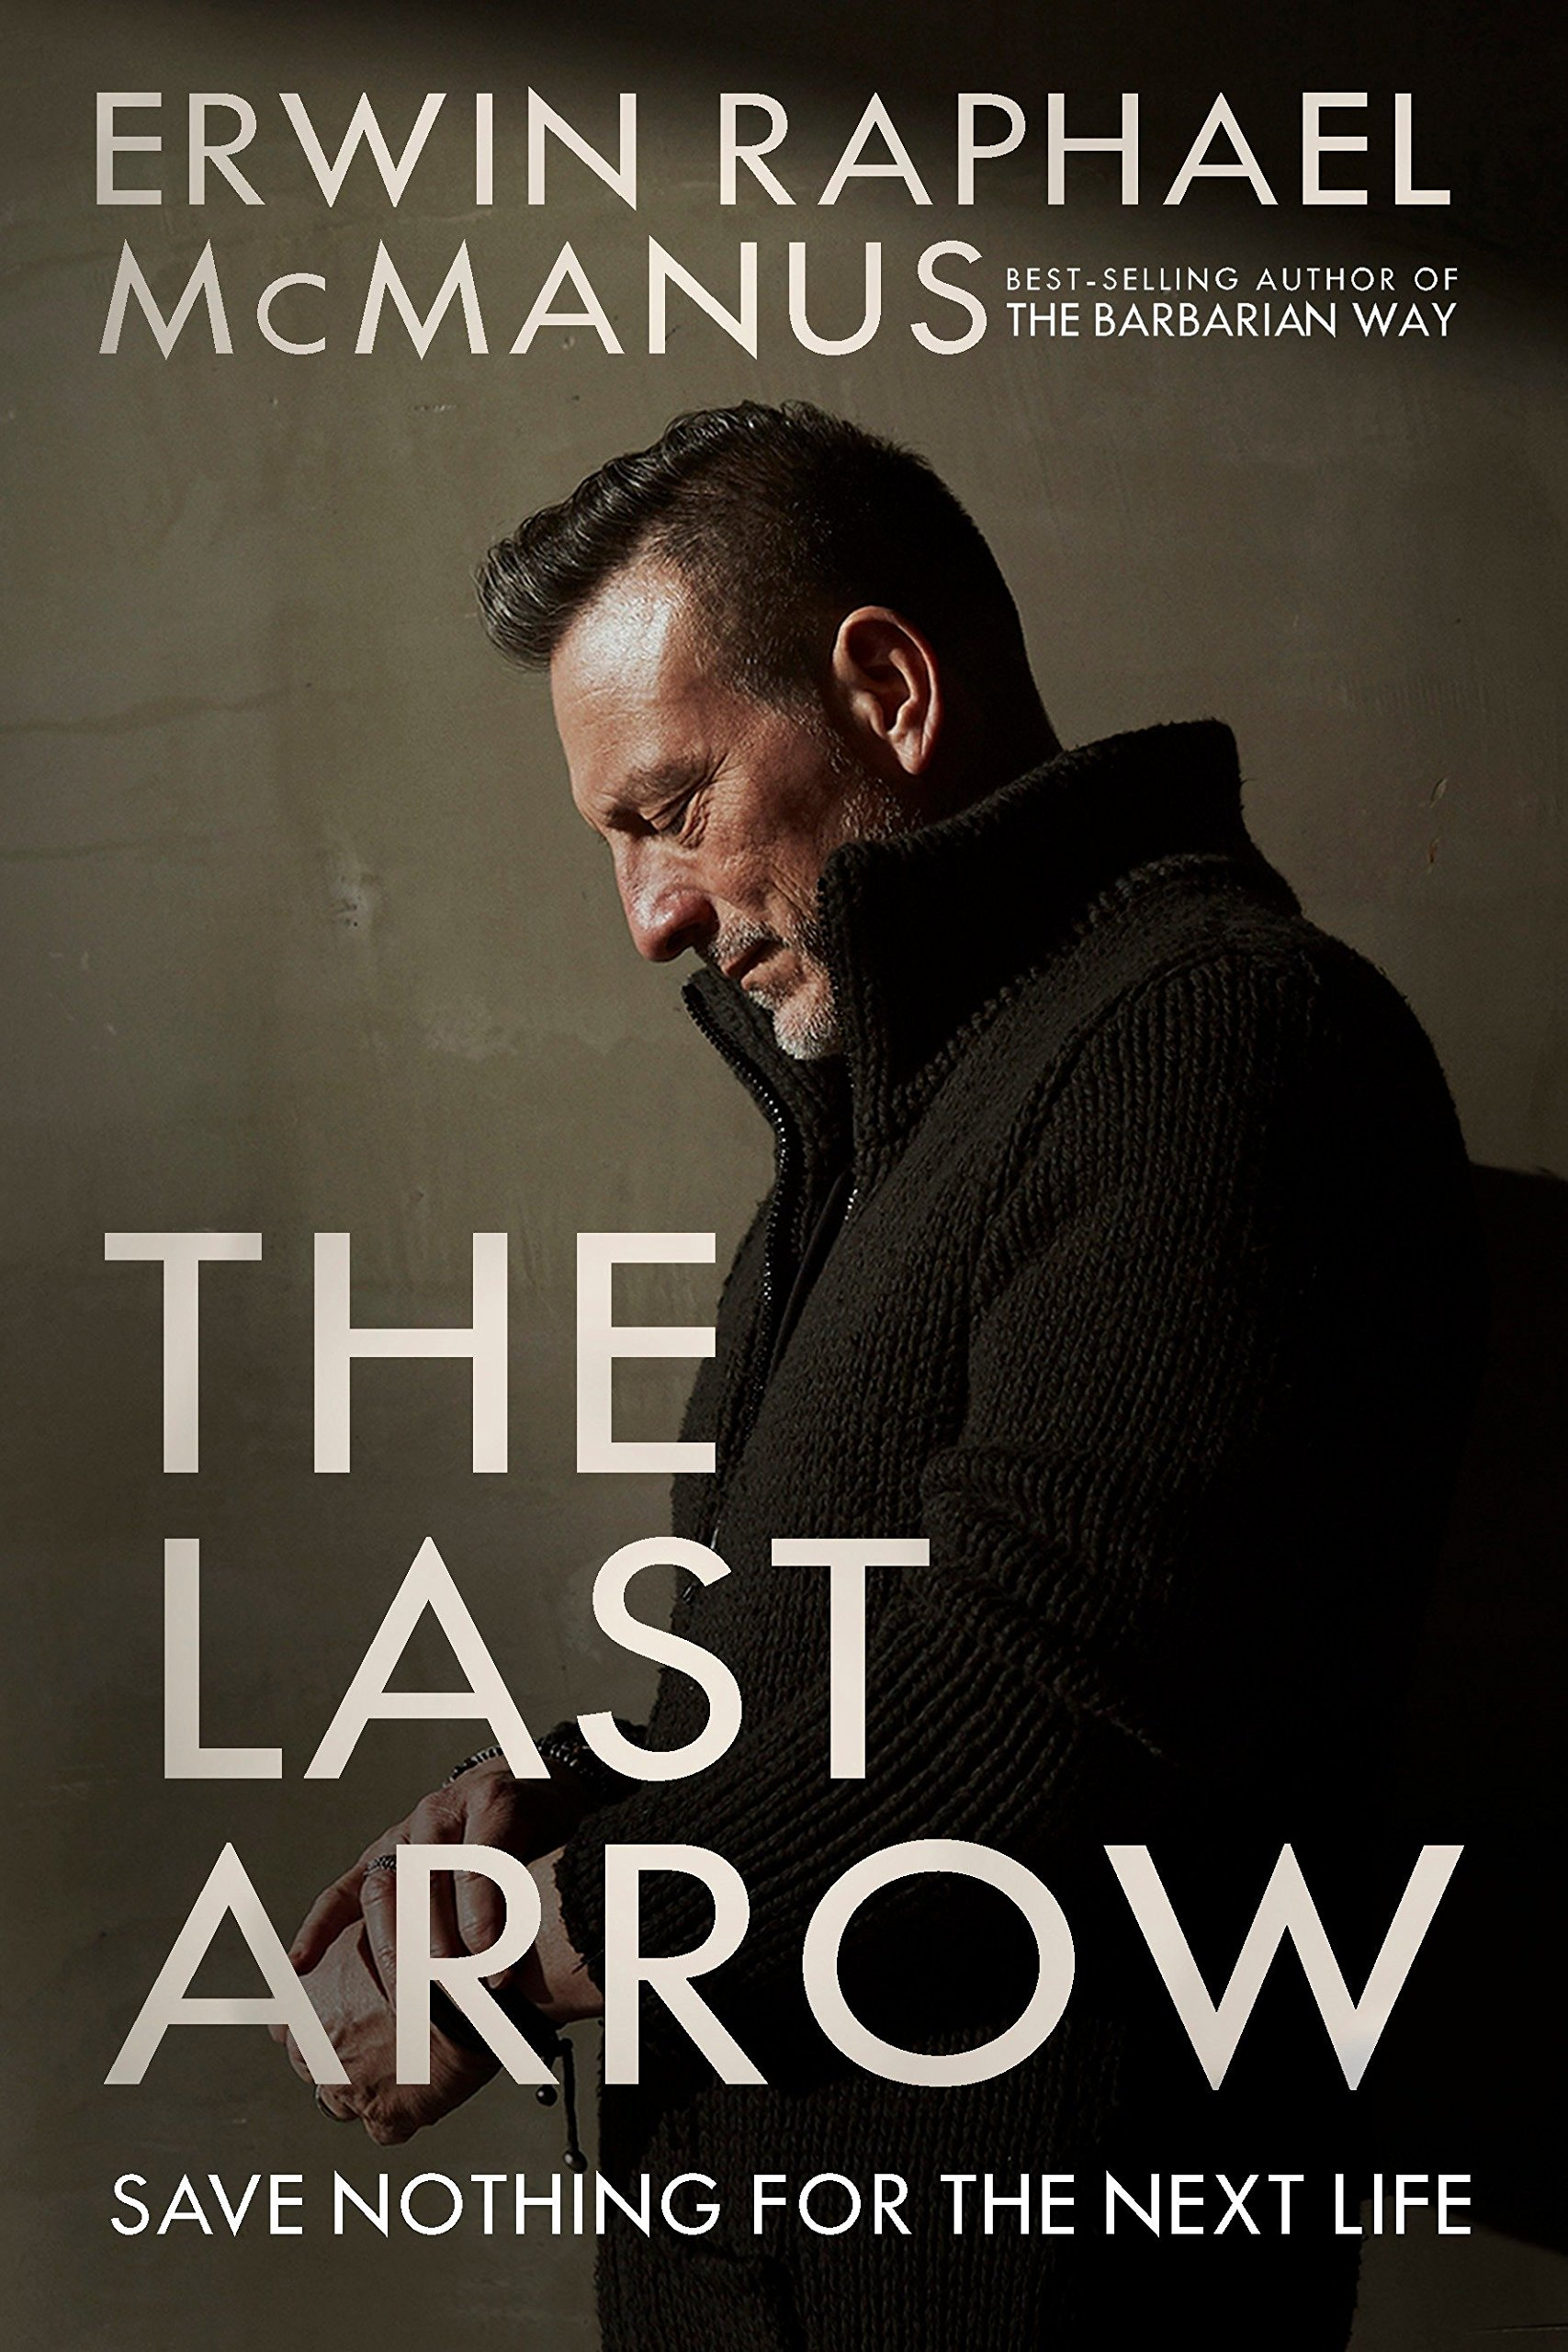 The Last Arrow: Save Nothing for the Next Life: Erwin Raphael